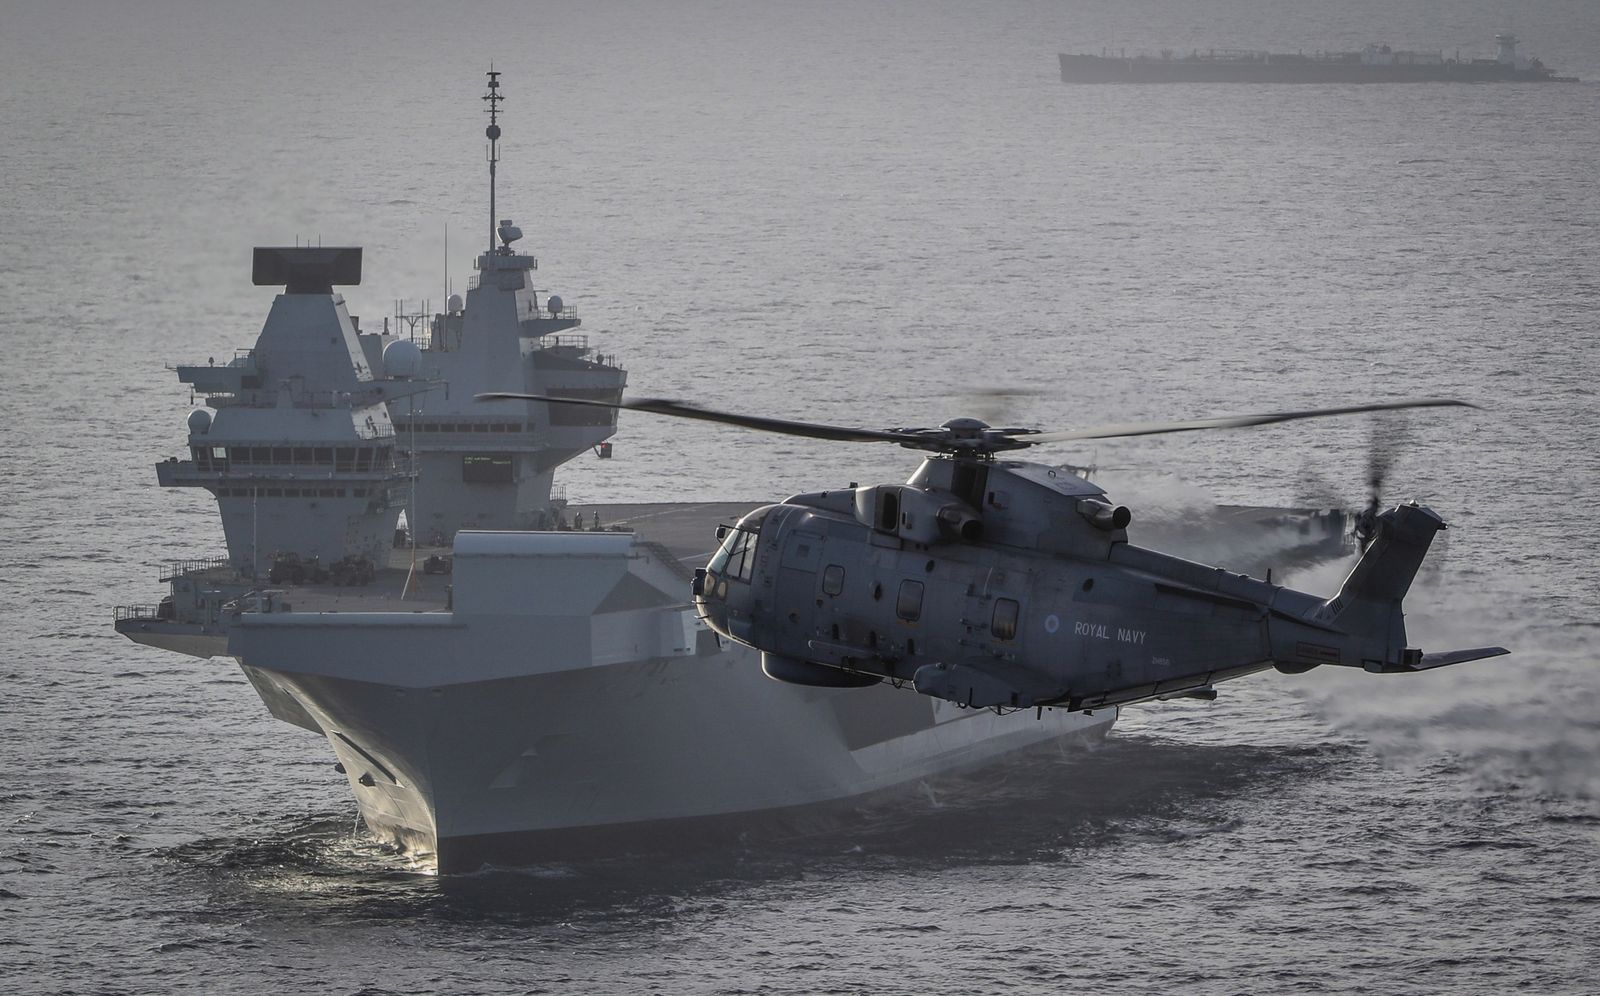 A Merlin Mk2 helicopter conducts trials during HMS Queen Elizabeth's North Atlantic crossing.